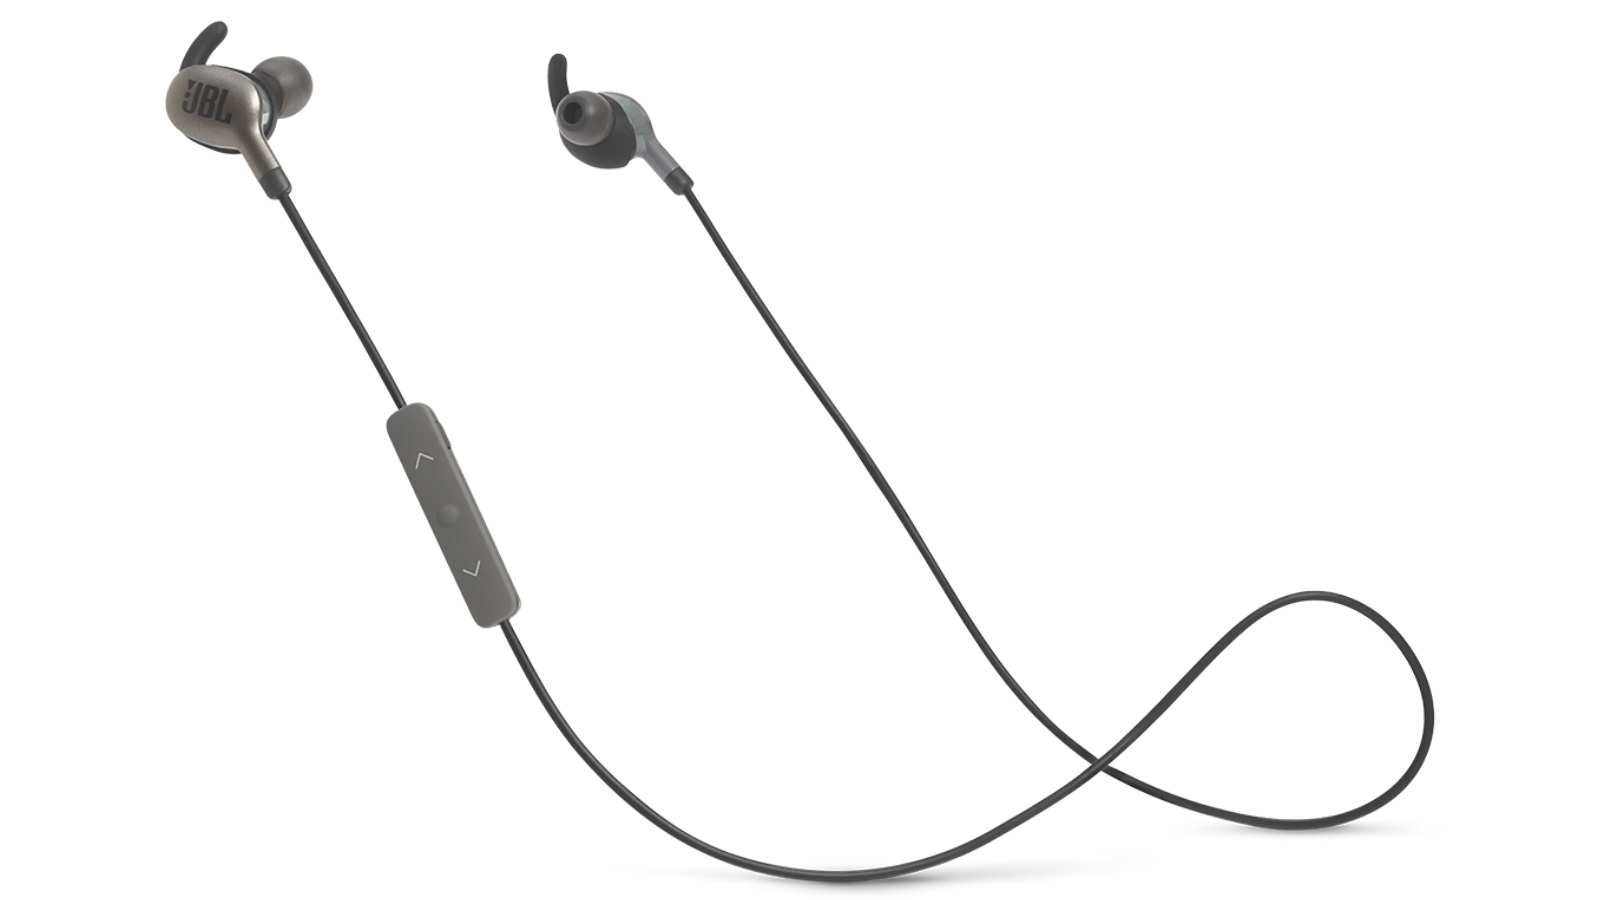 JBL Everest 110 Bluetooth Wireless In-Ear Headphones - Grey